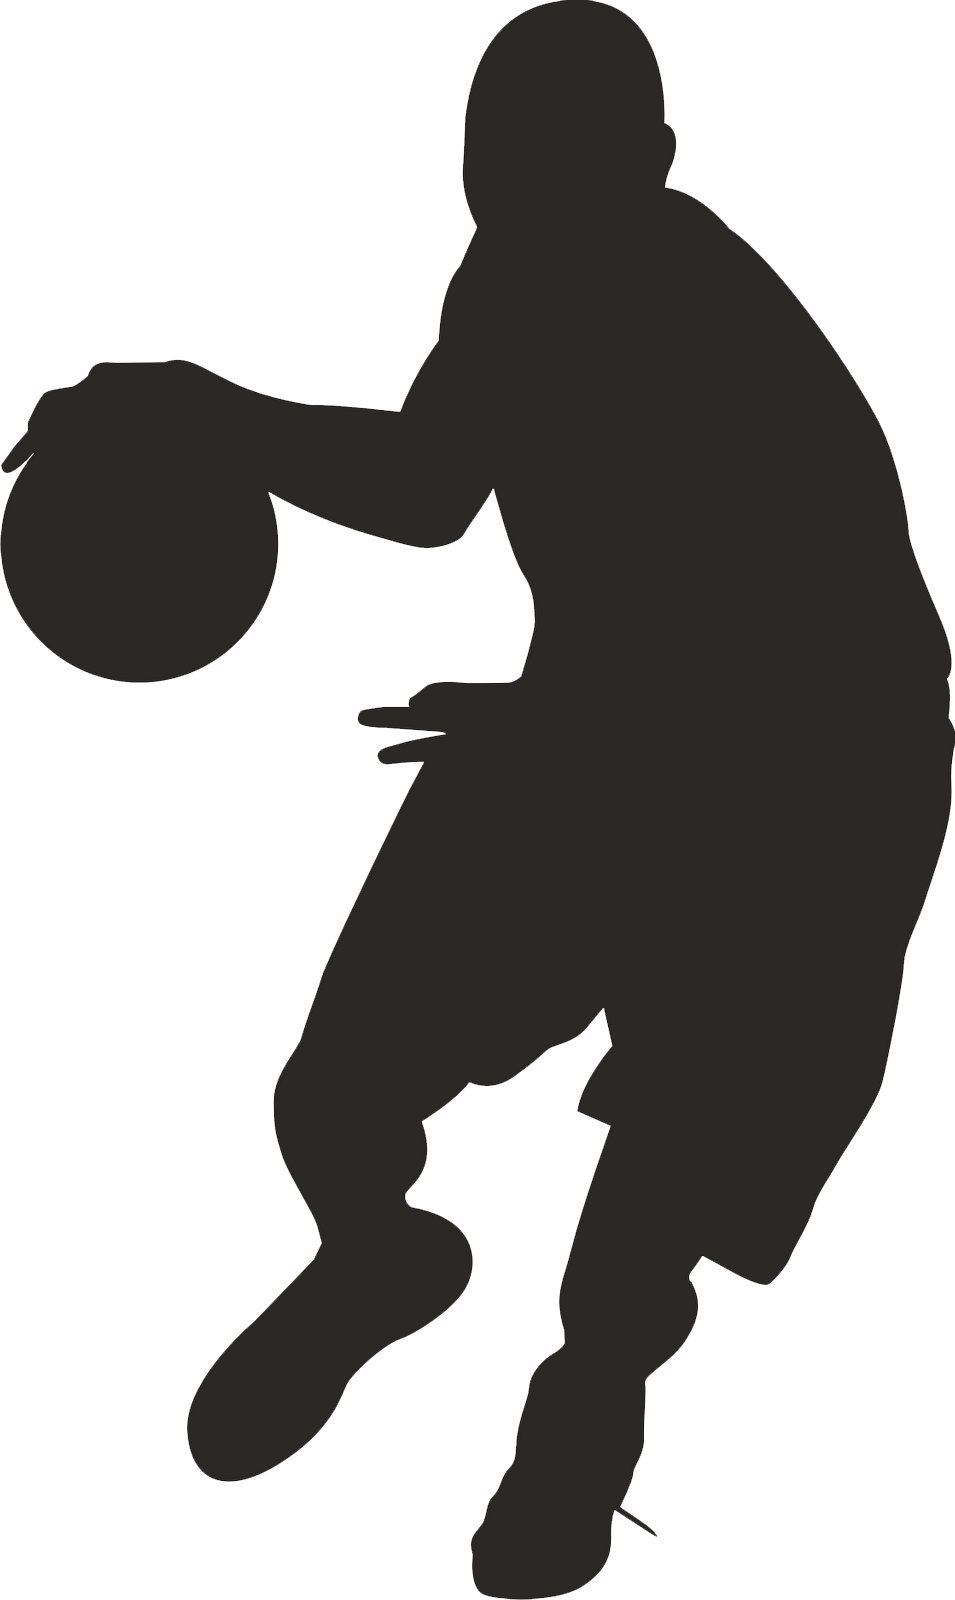 Football player clipart gray vector black and white download Silhouette Basketball Players at GetDrawings.com | Free for personal ... vector black and white download